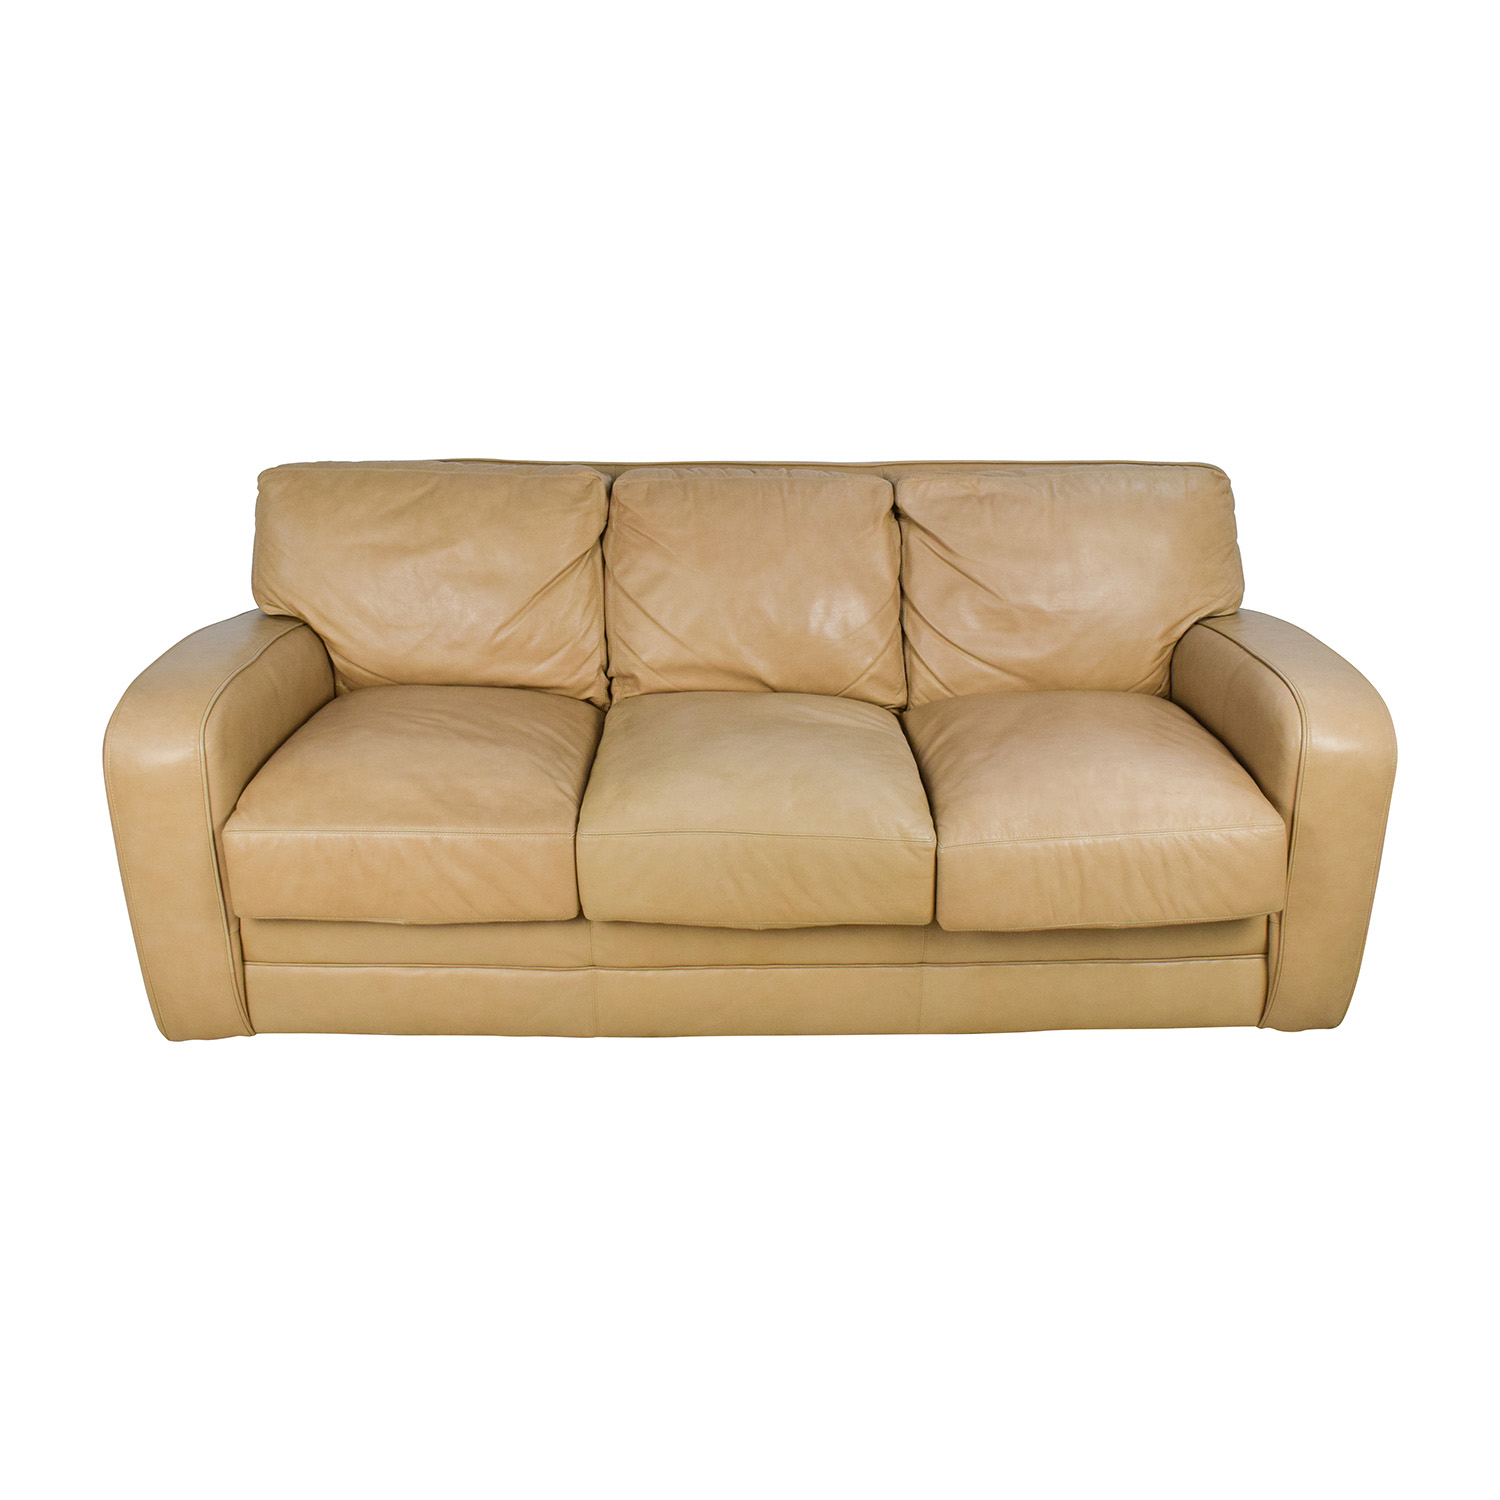 Leather Sofa Price: Beige Three Seat Leather Sofa / Sofas